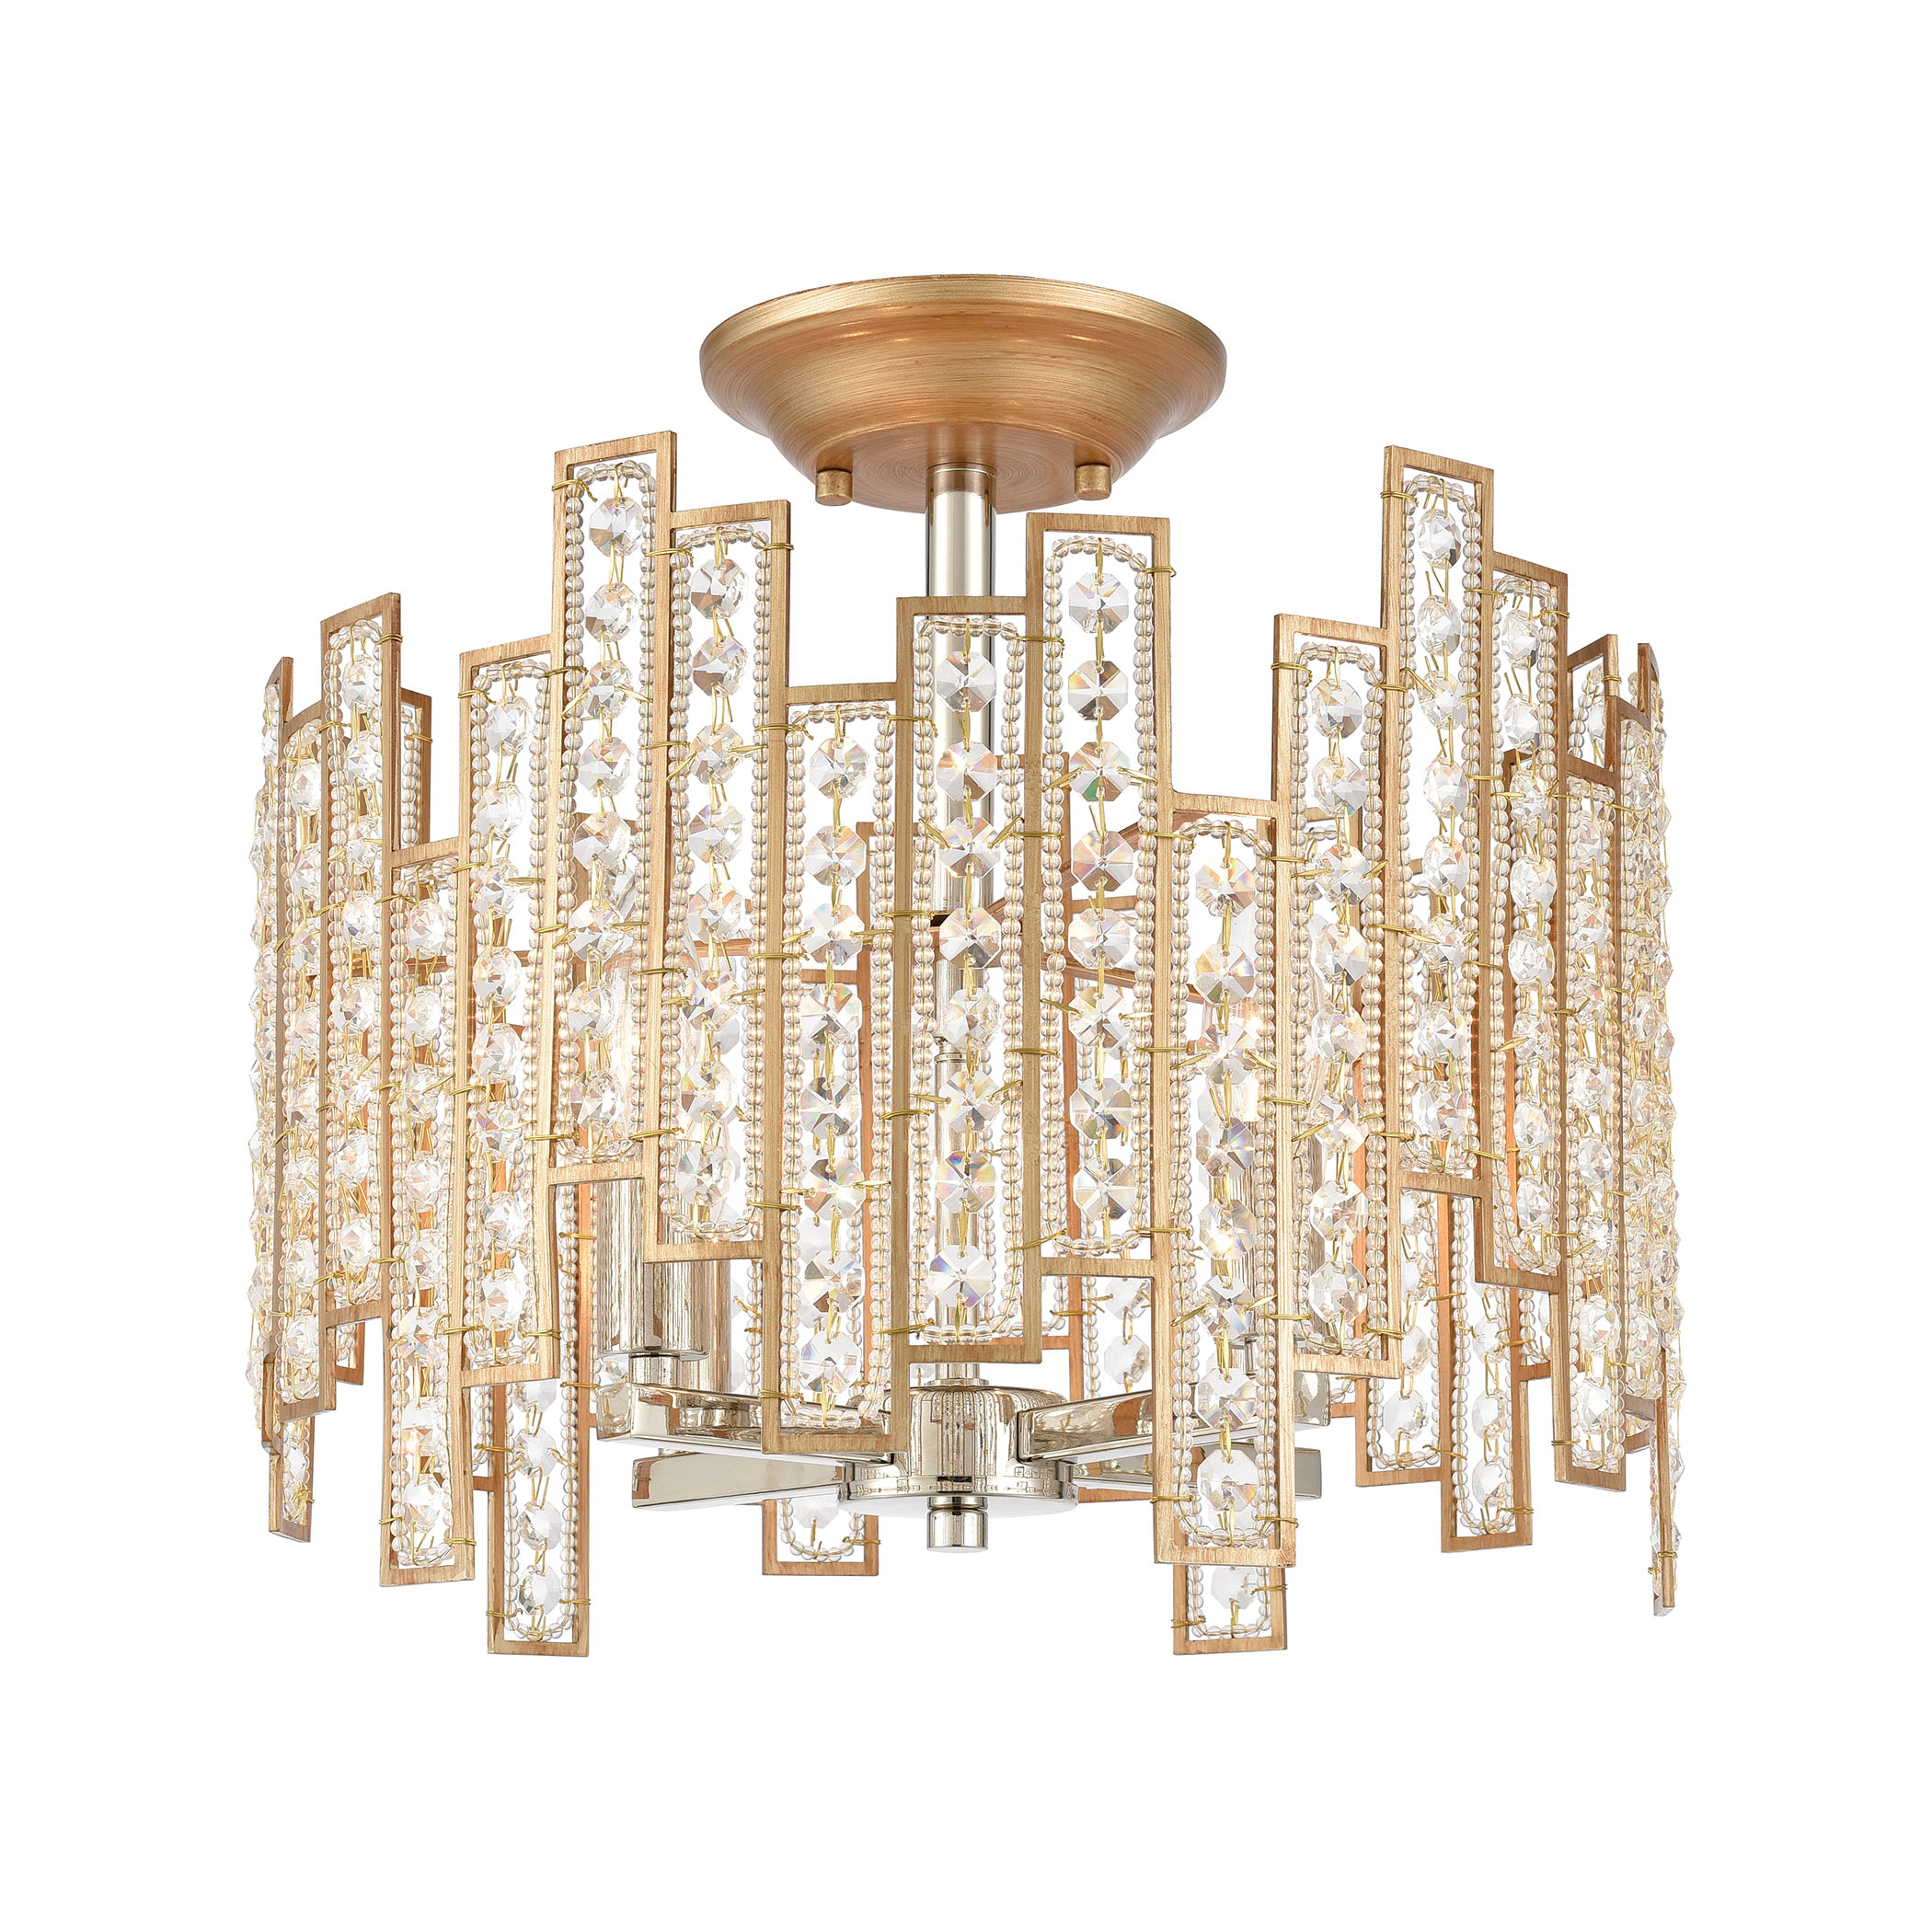 EL-12131/4_Equilibrium 4-Light Semi Flush Mount in Matte Gold with Clear Crystal